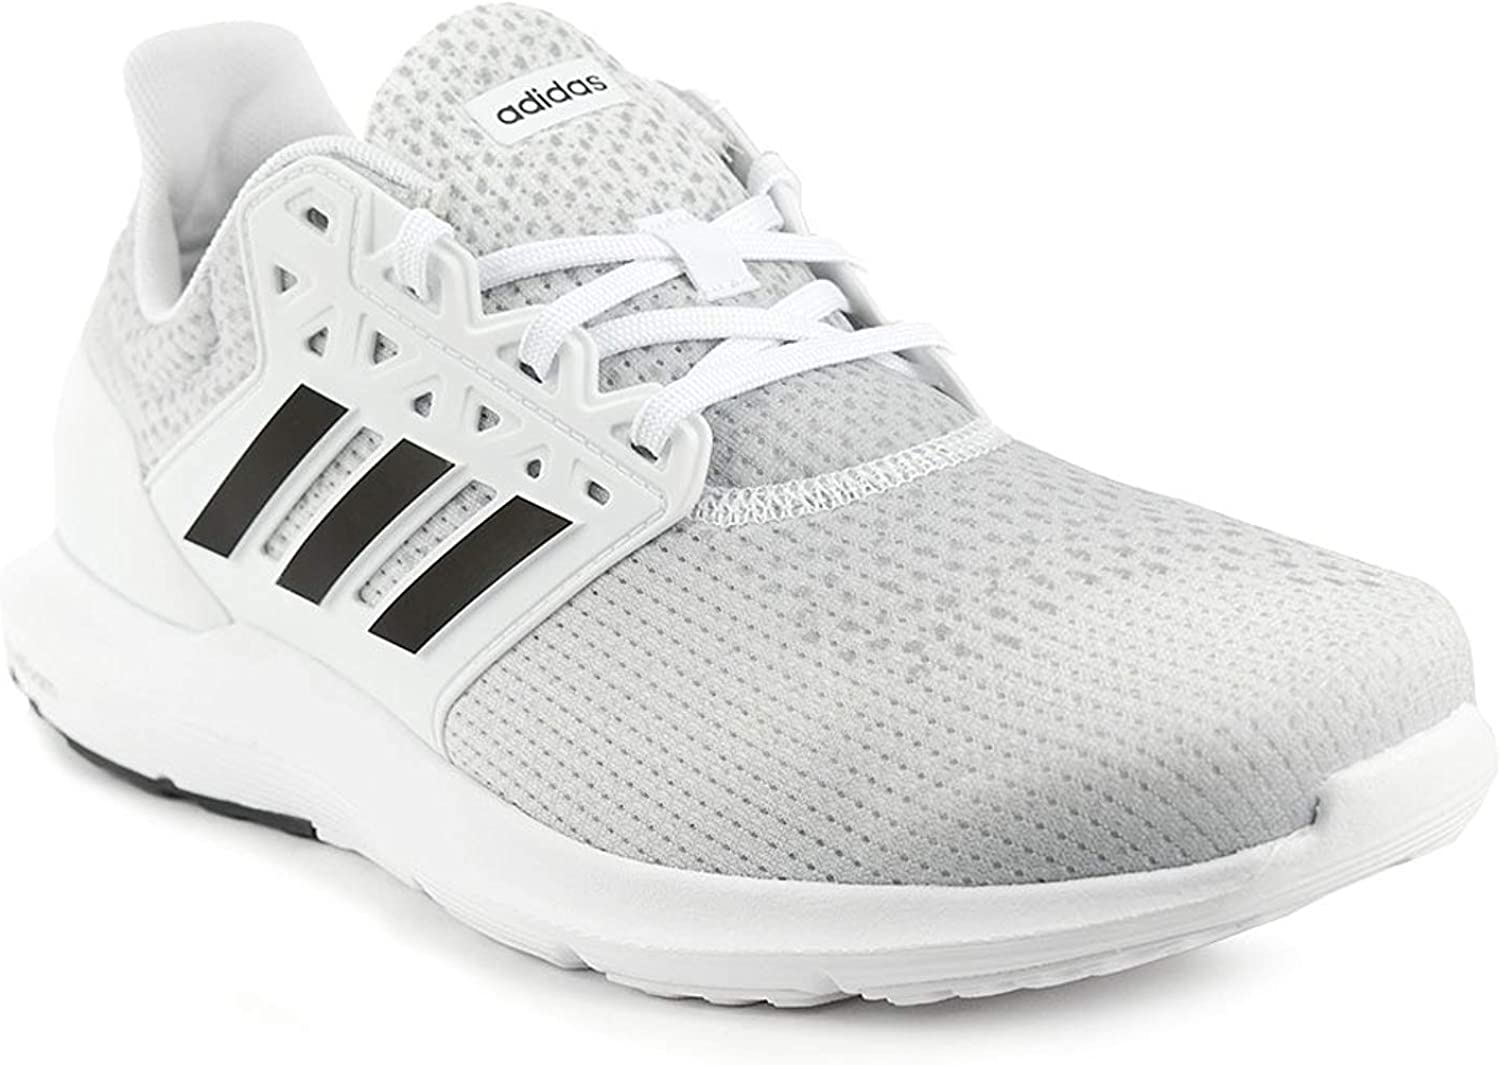 Adidas Mens Solyx Running shoes